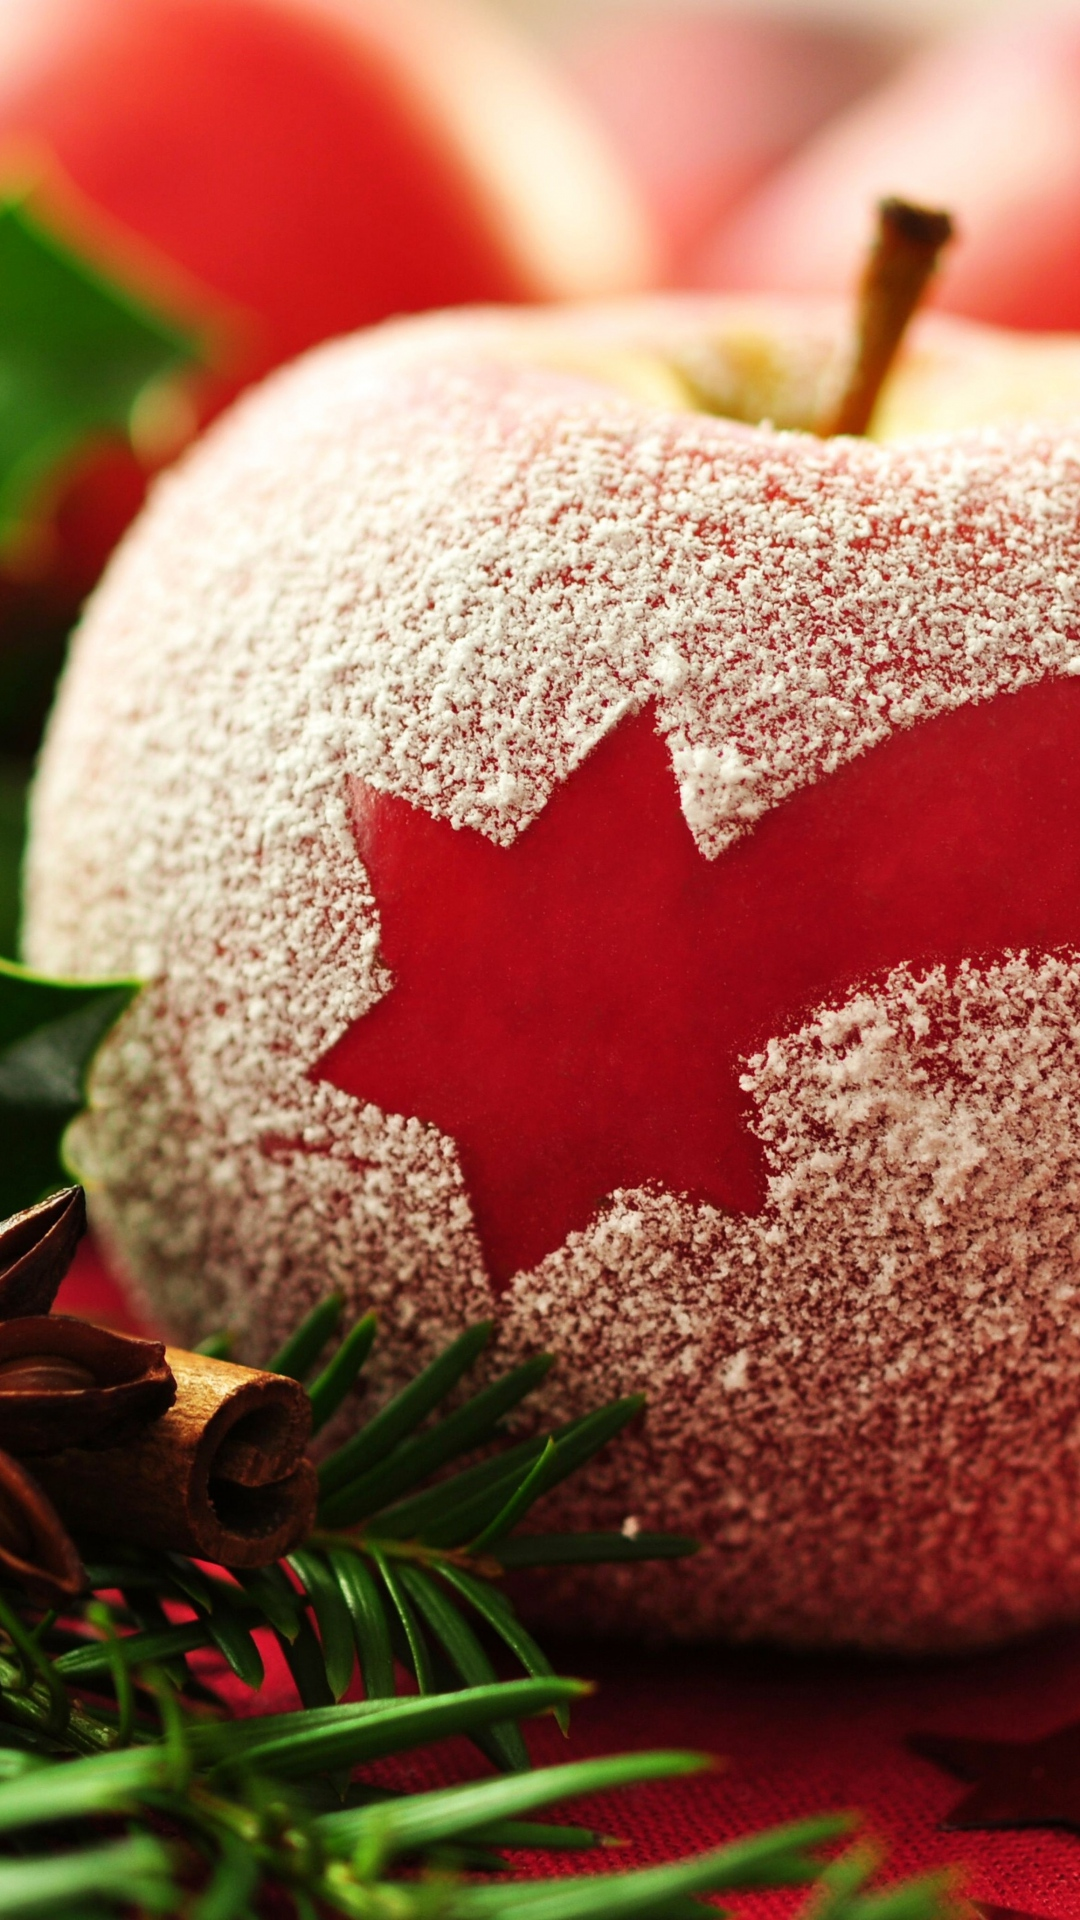 Christmas apple htc one wallpaper